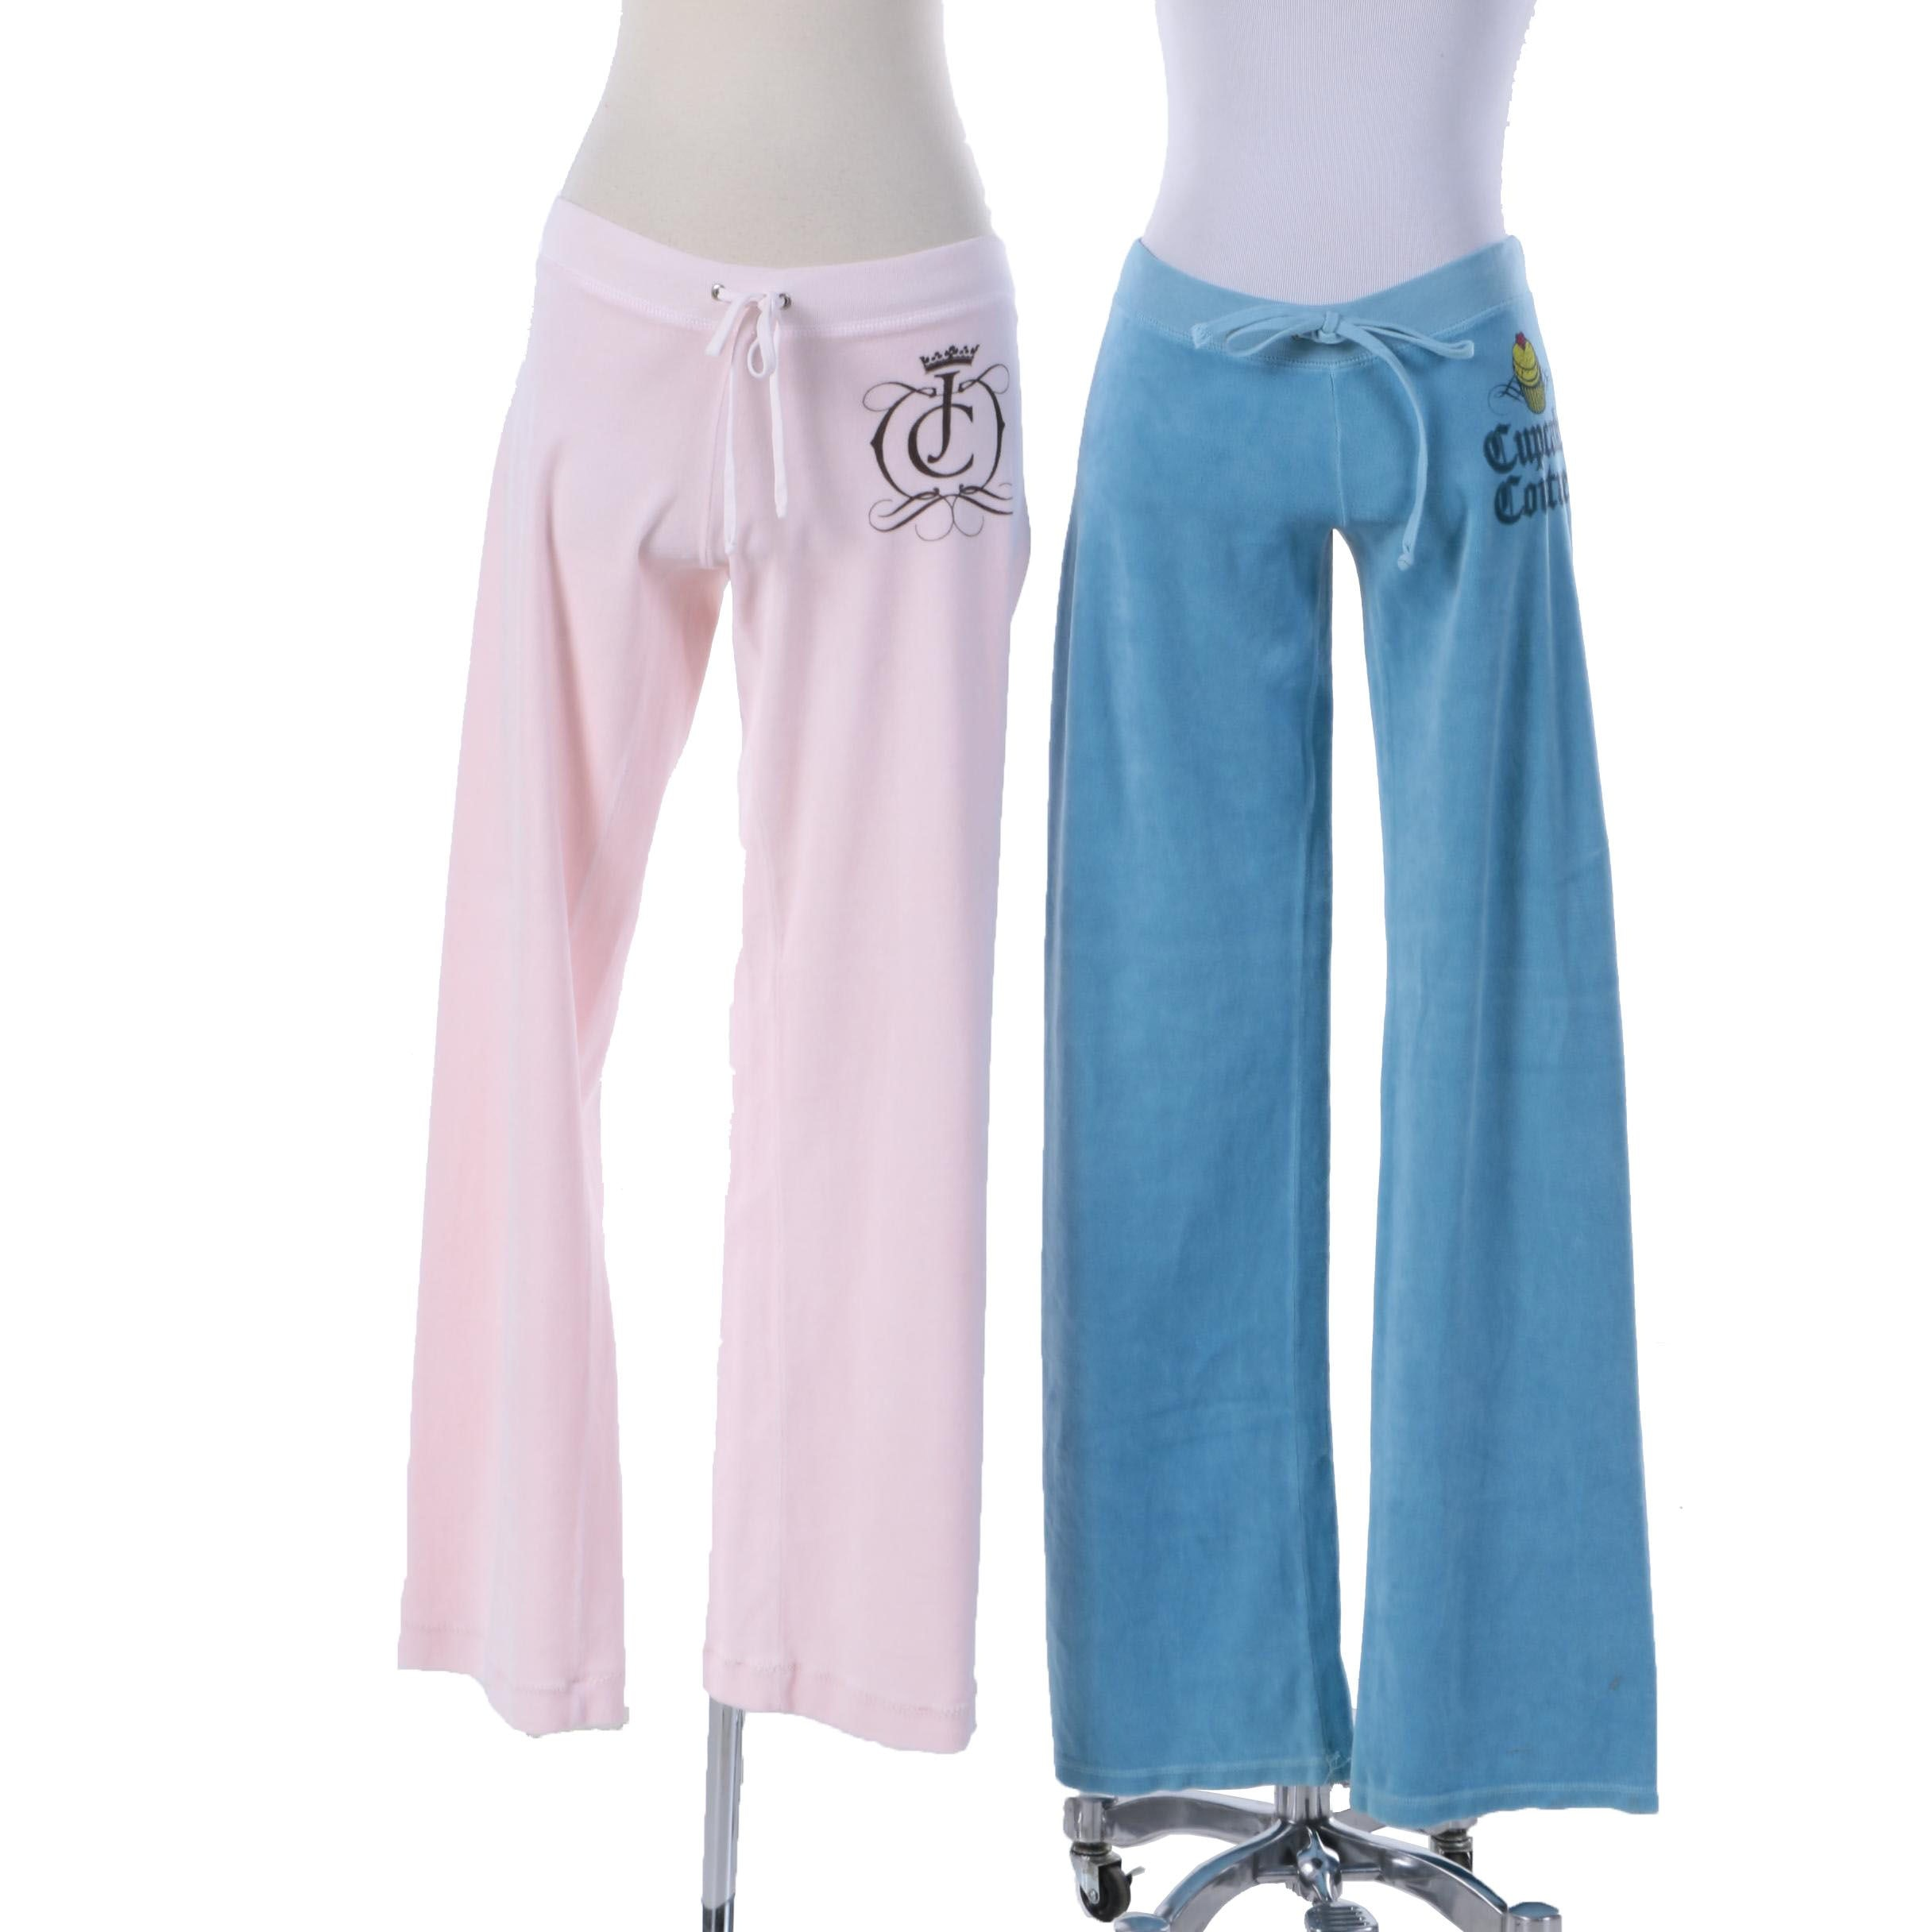 Women's Juicy Couture Pink and Blue Velour Joggers